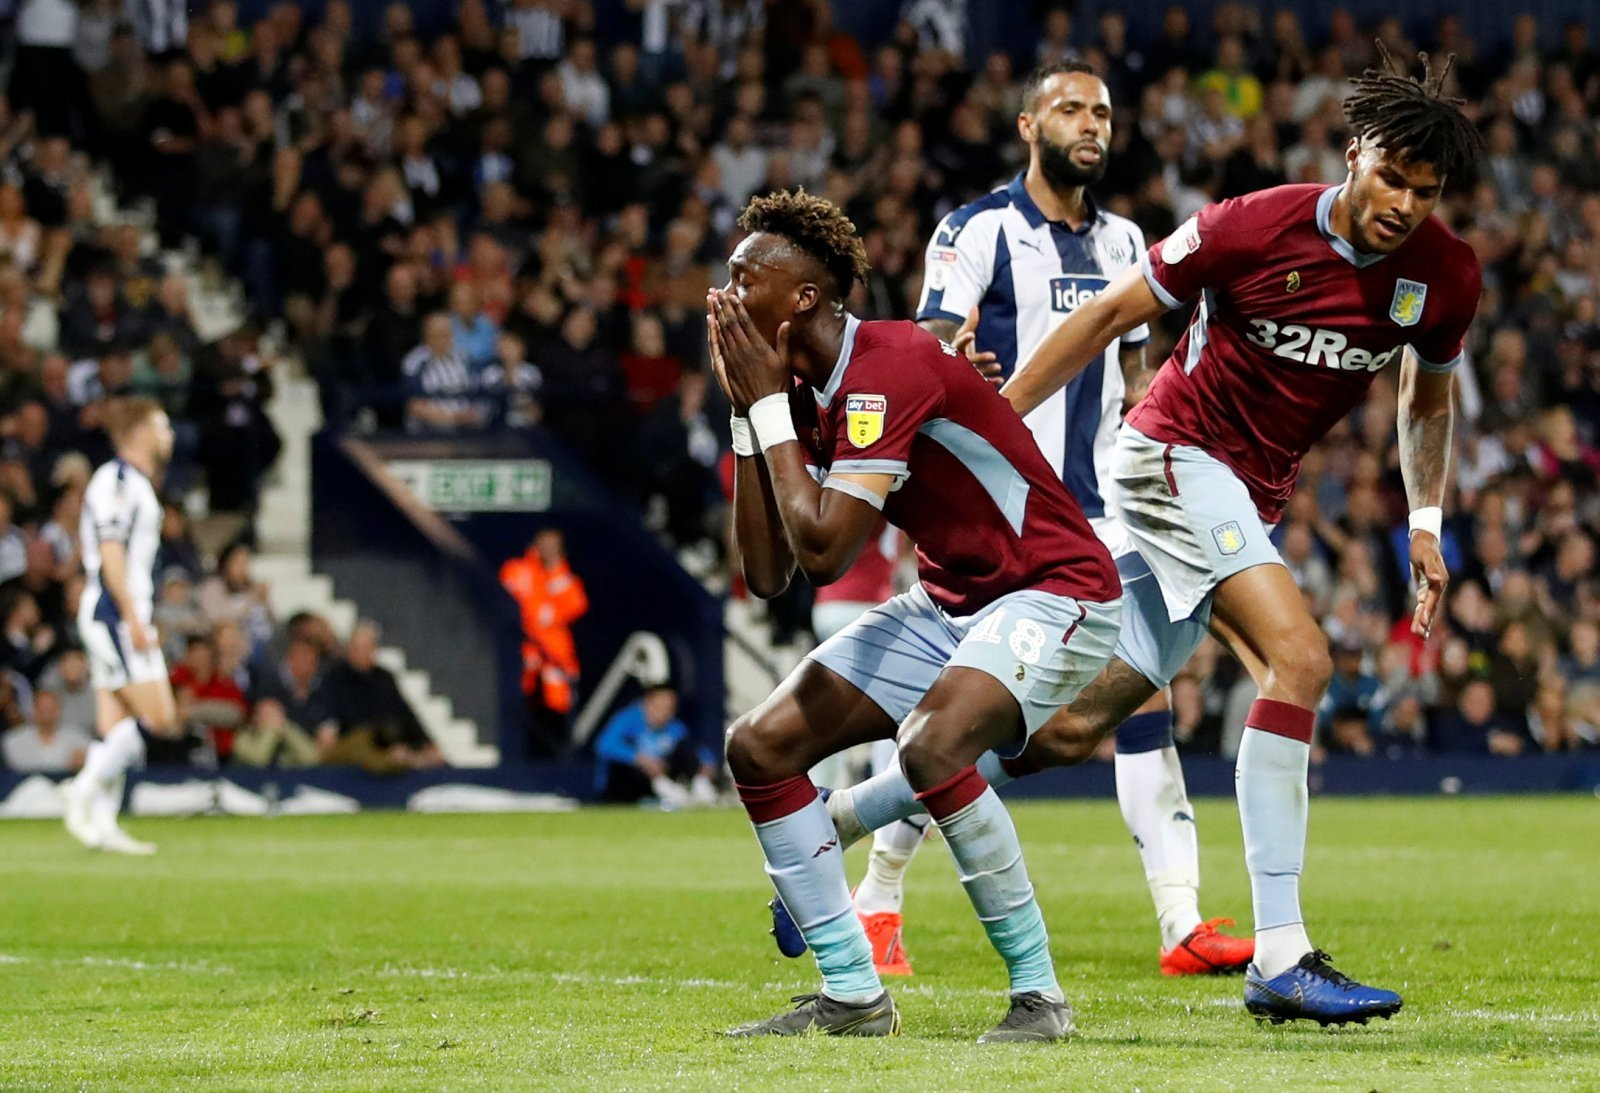 Aston Villa: Signing Tammy Abraham would be a dream come true